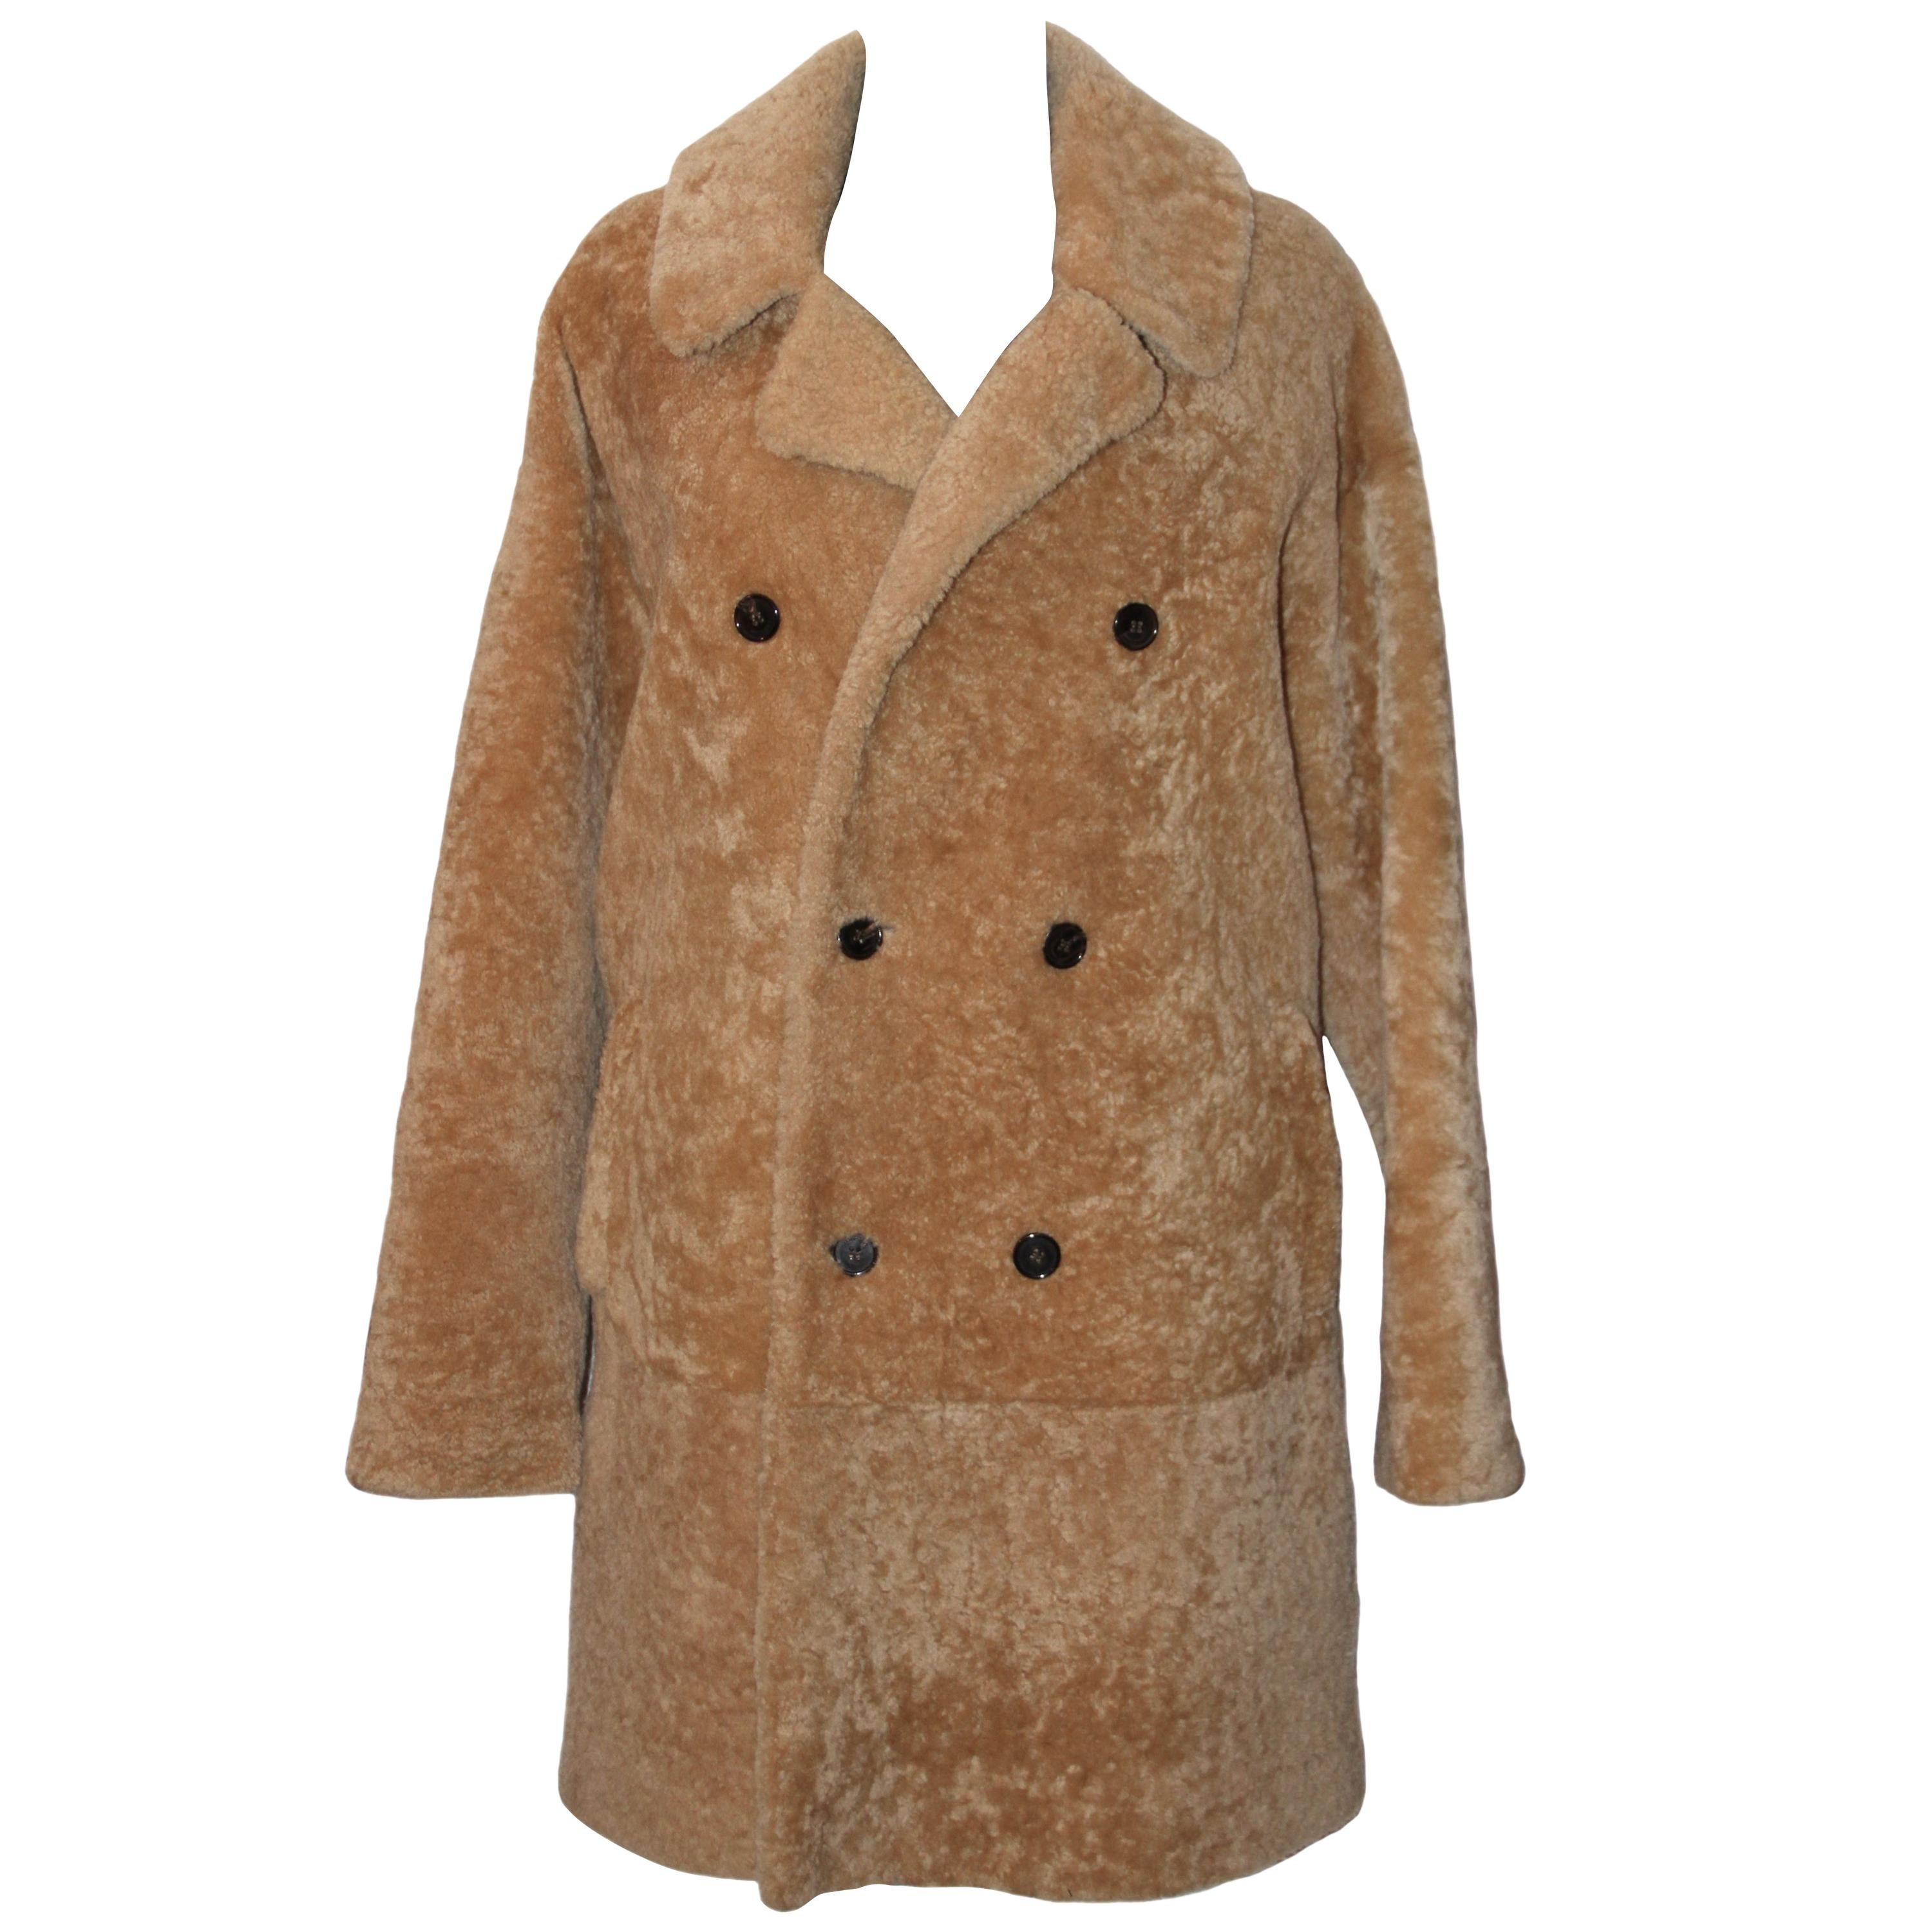 Yves Saint Laurent Double-breasted Shearling Coat